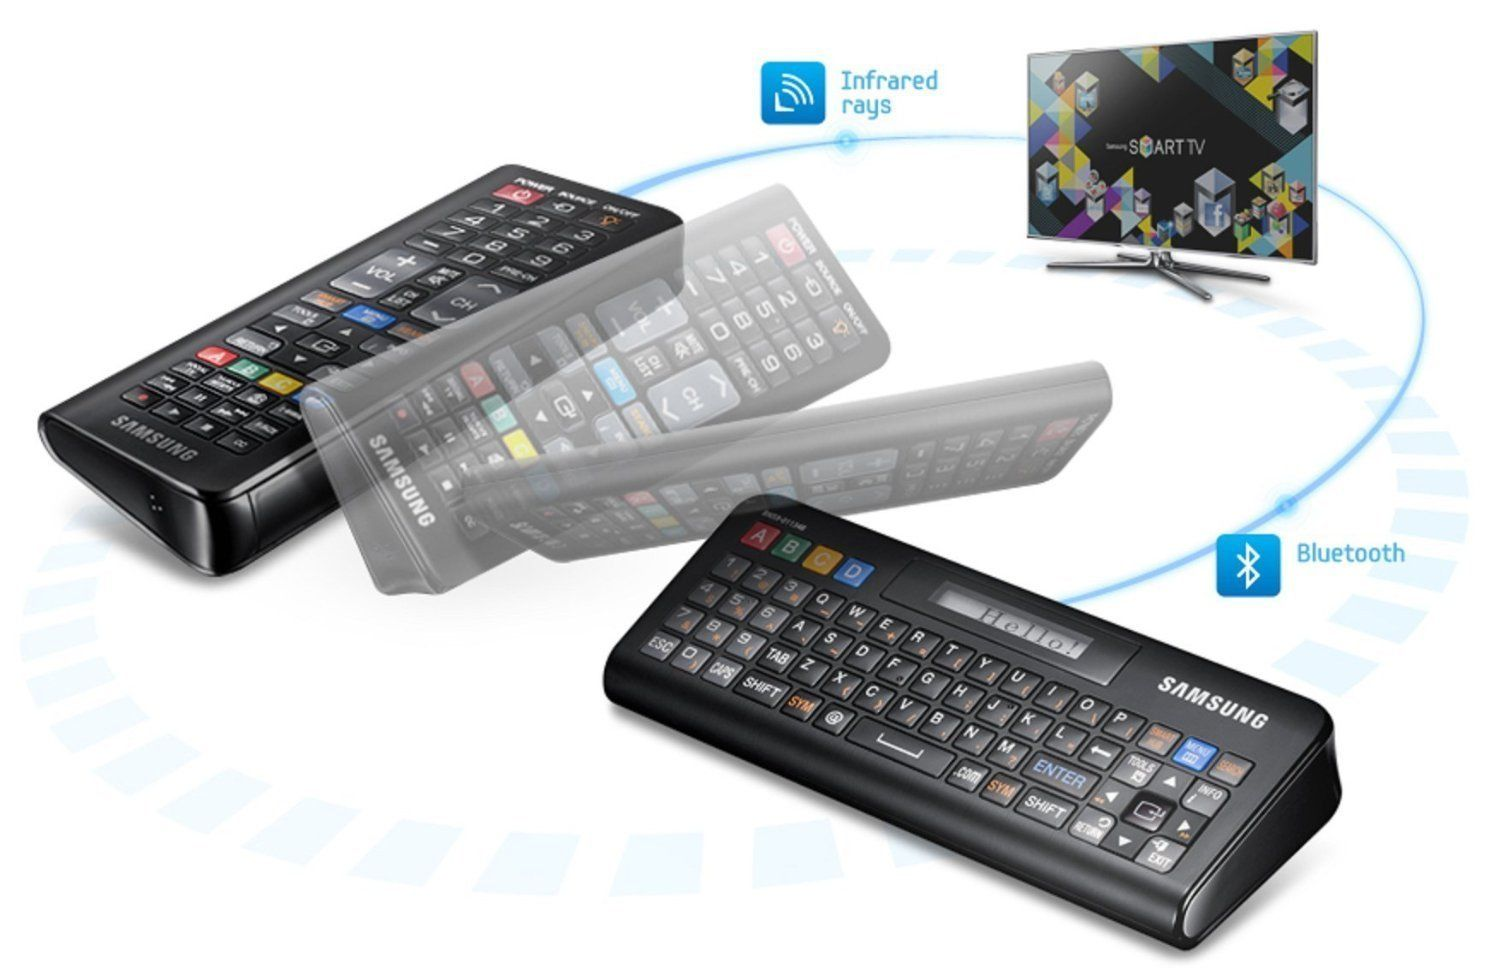 SAMSUNG RMC-QTD1 2 in 1 Qwerty Remote Control For Smart TV Black by SAMSUNG RMC-QTD1 2 in 1 Qwerty Remote Control